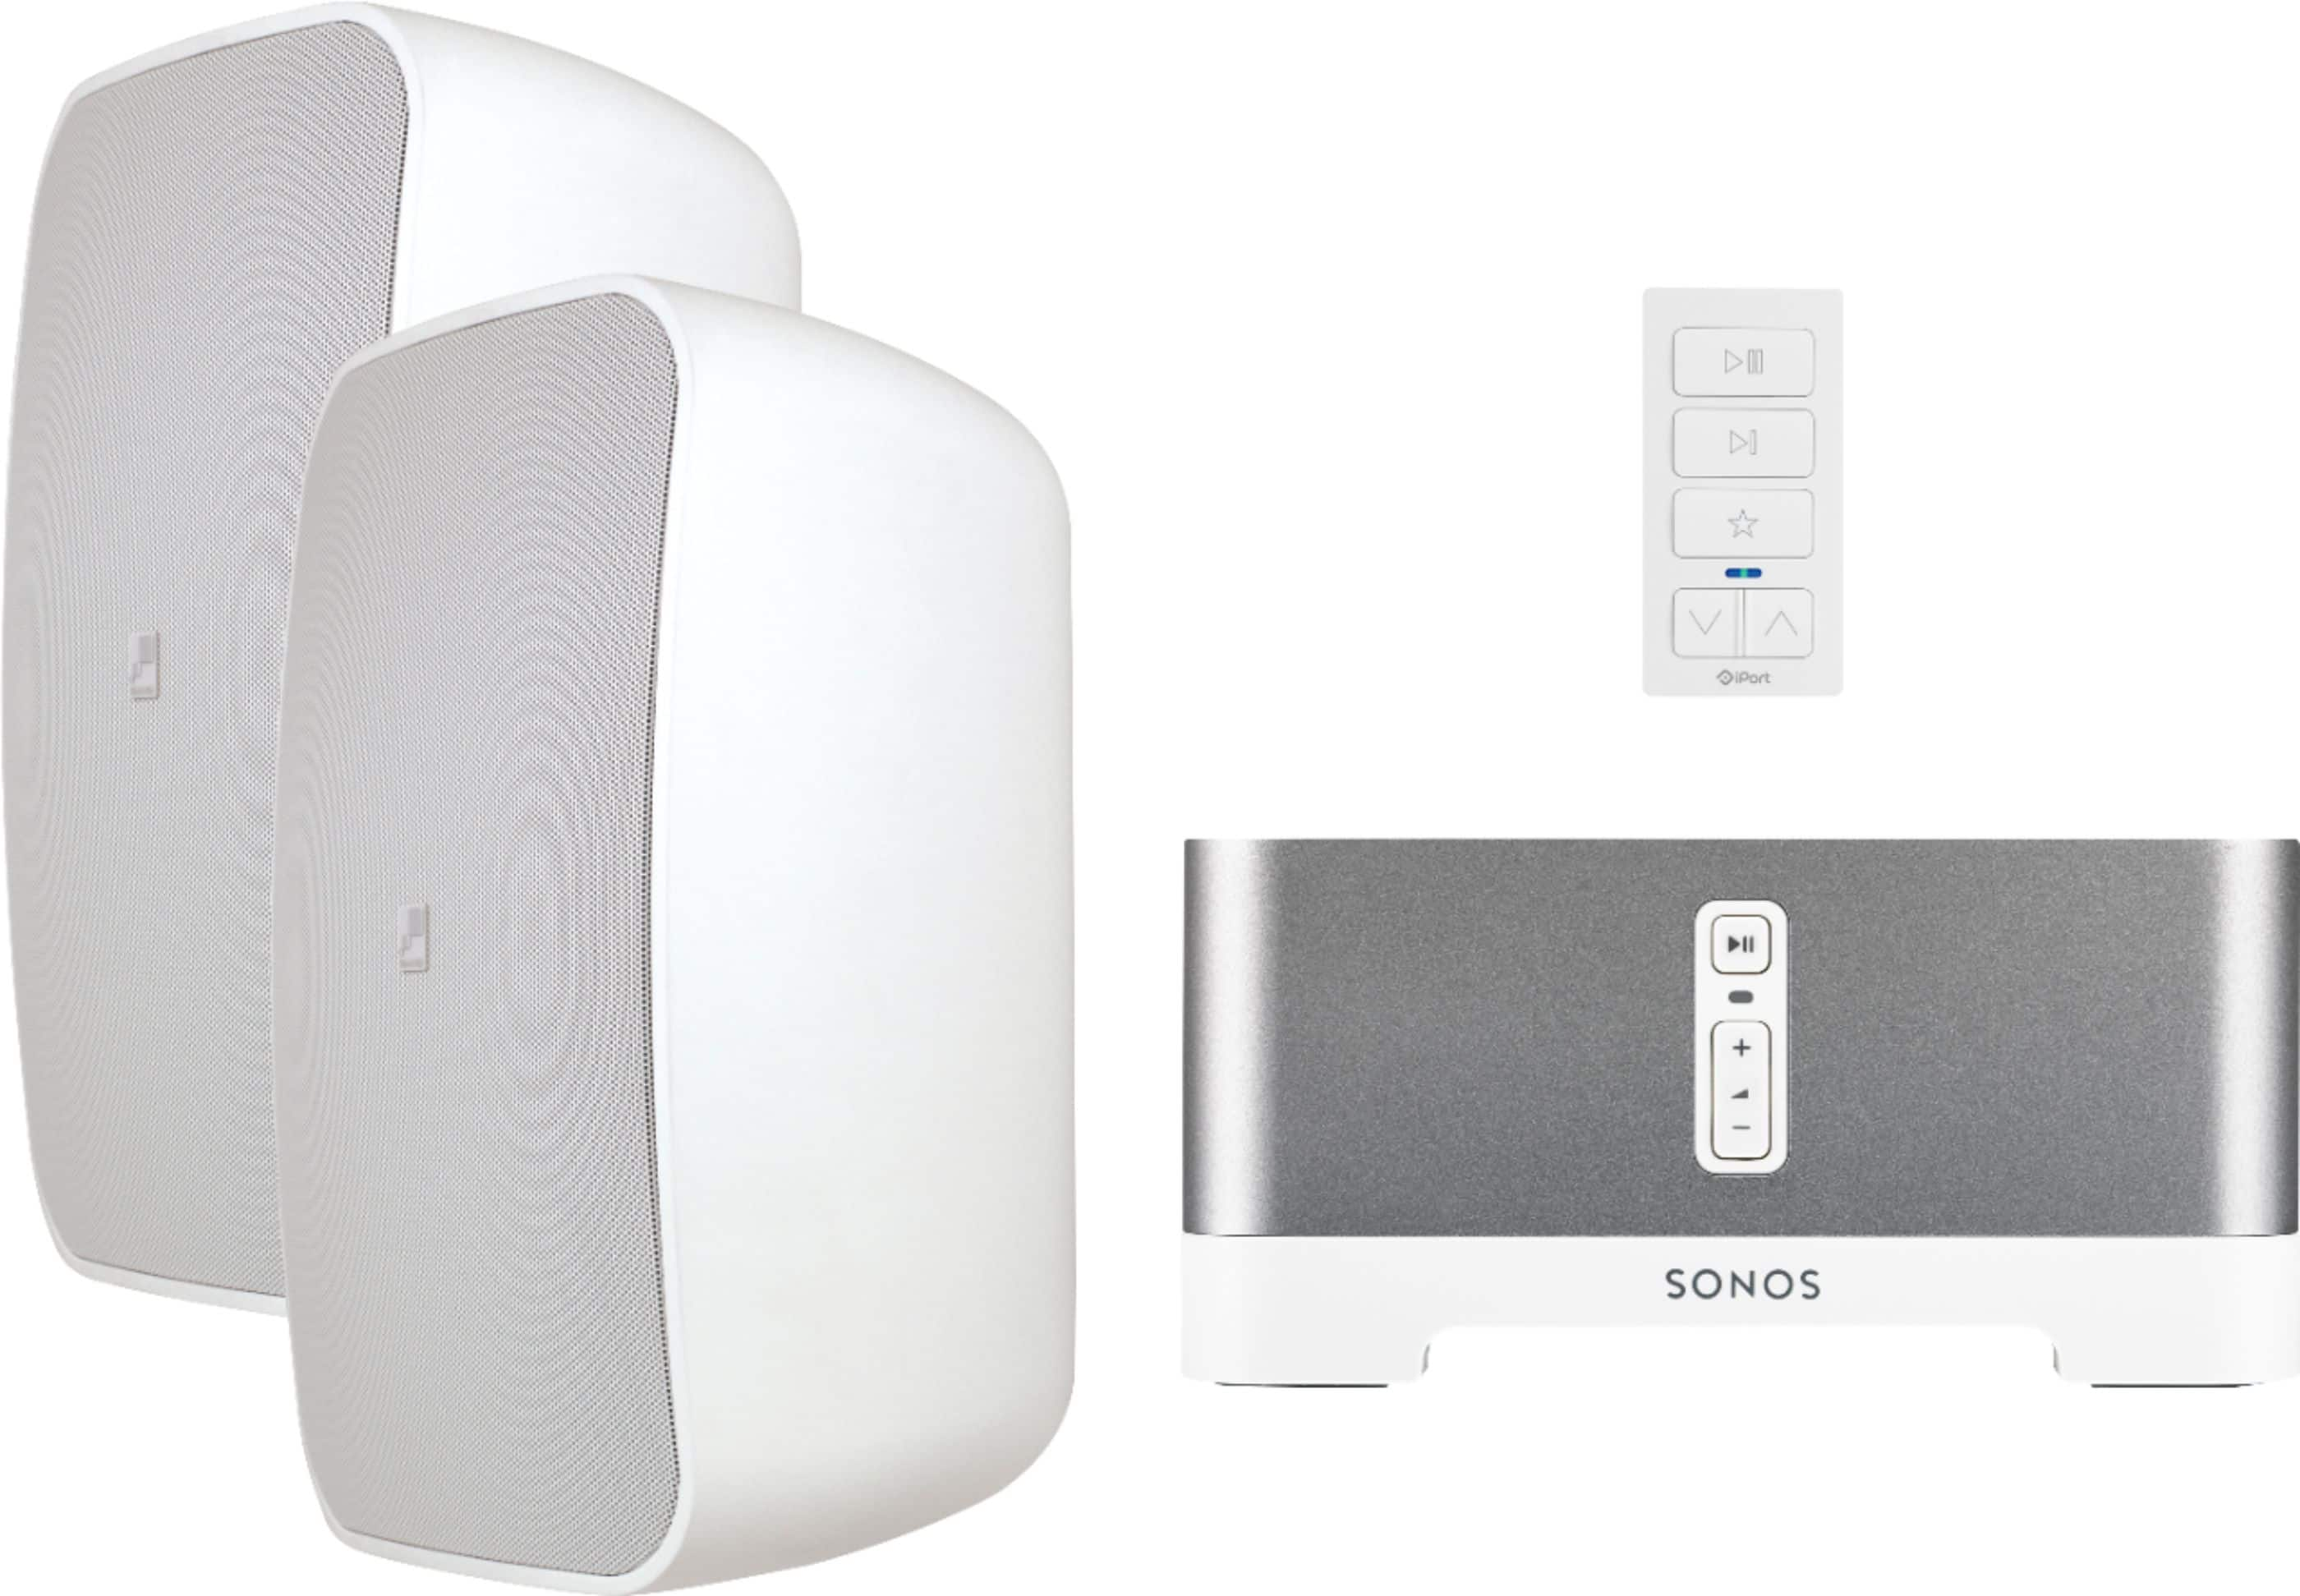 Sonos & Sonance - Outdoor Speaker Streaming Audio Bundle with xPress Audio Keypad - White/Gray $750